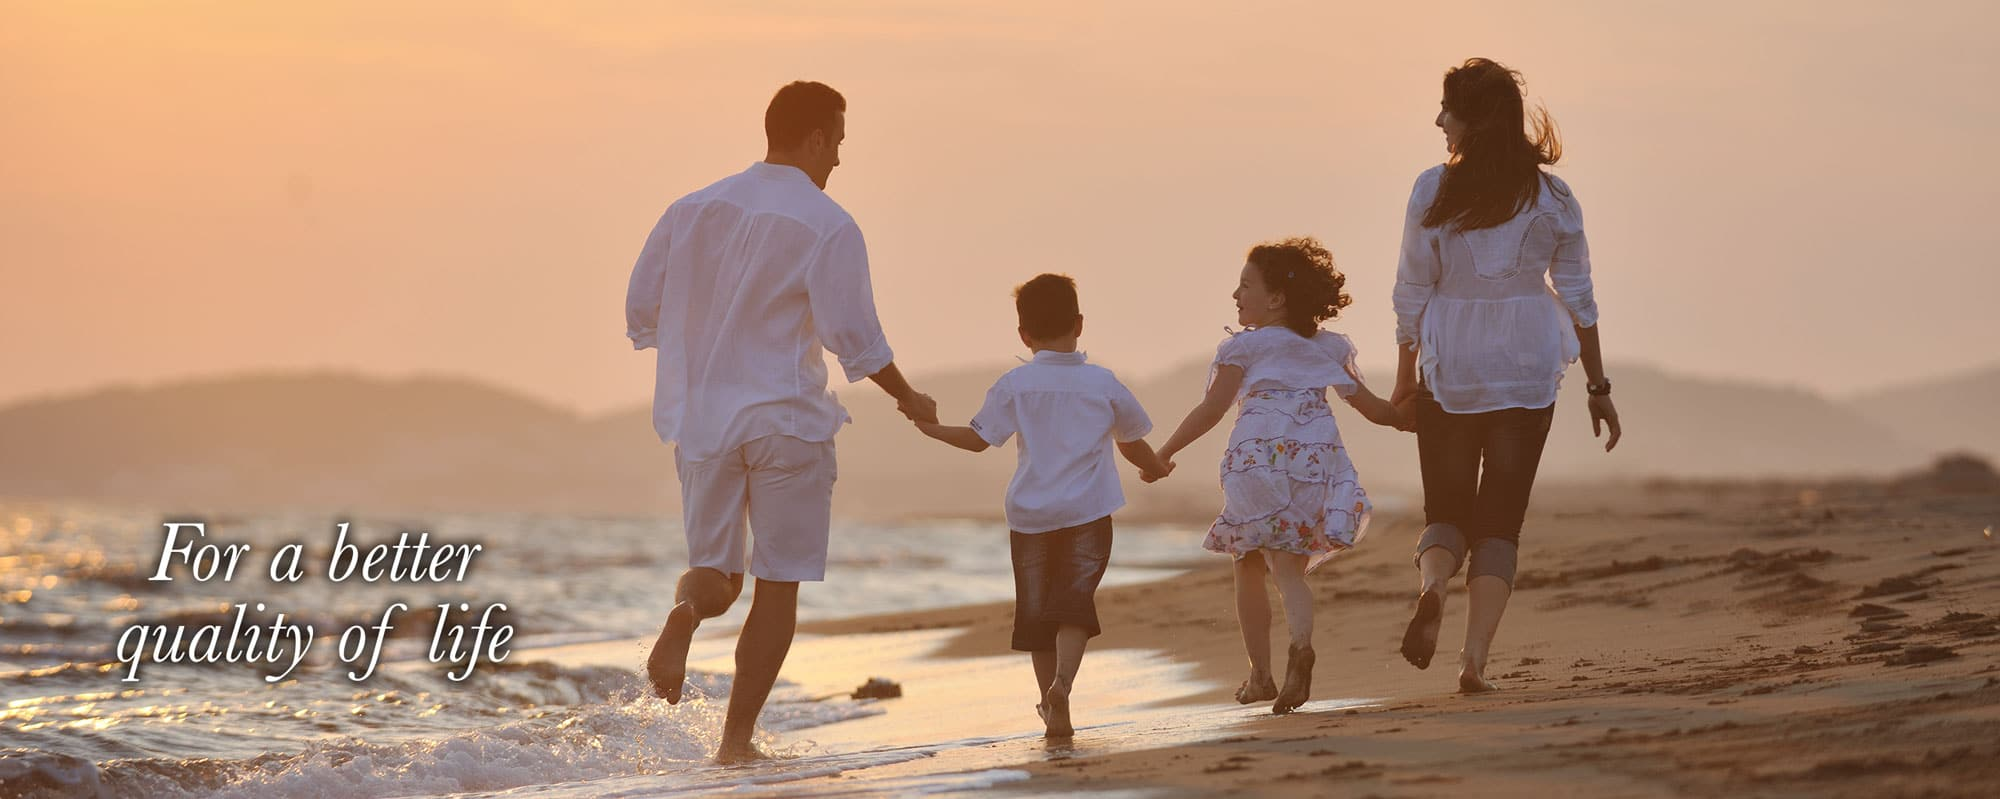 Family of four holding hands running down the beach banner